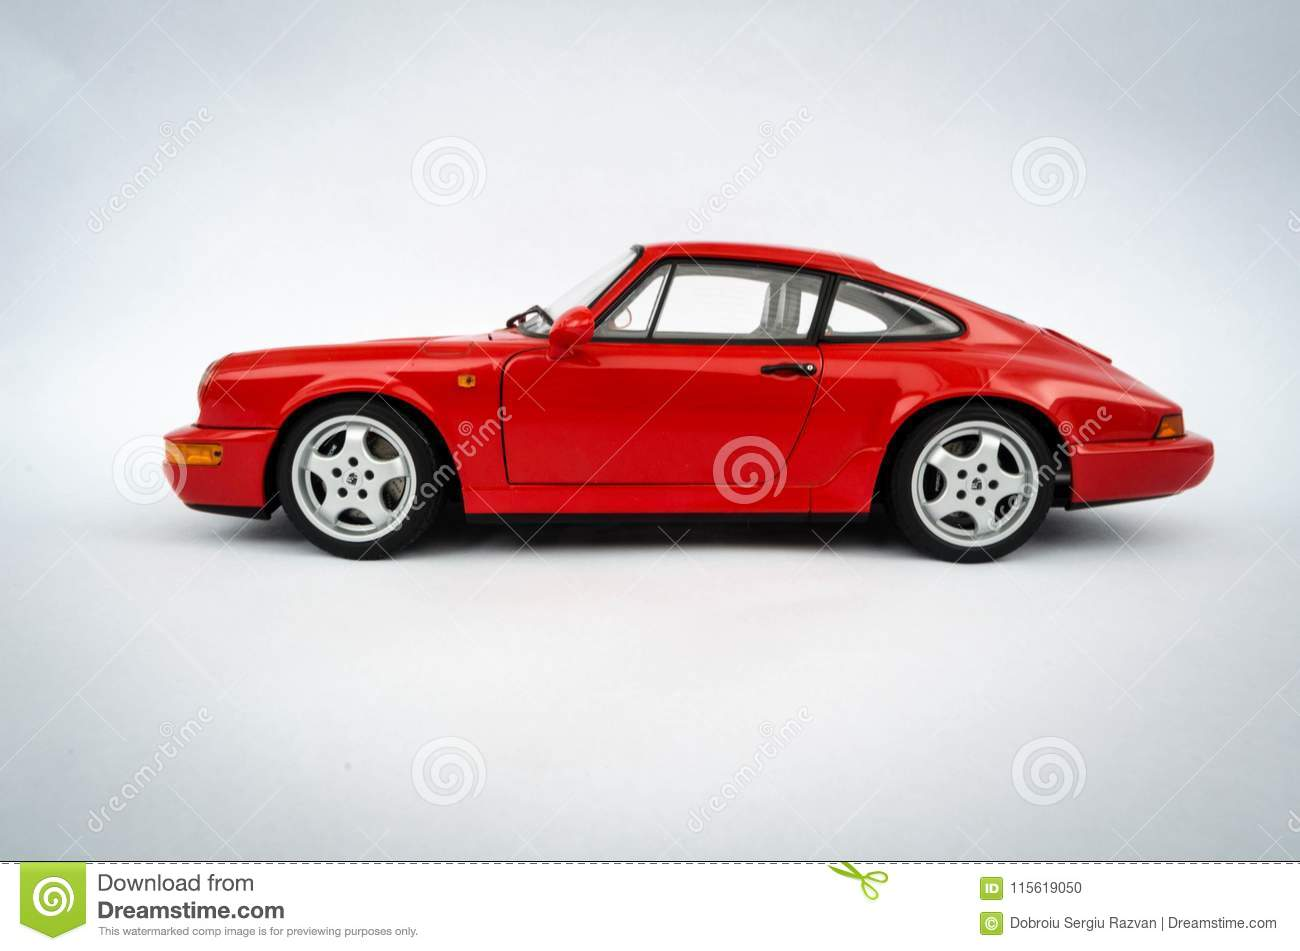 Porsche 911 Carrera Rs 118 Autoart Model Editorial Image Of 1 18 Scale An From